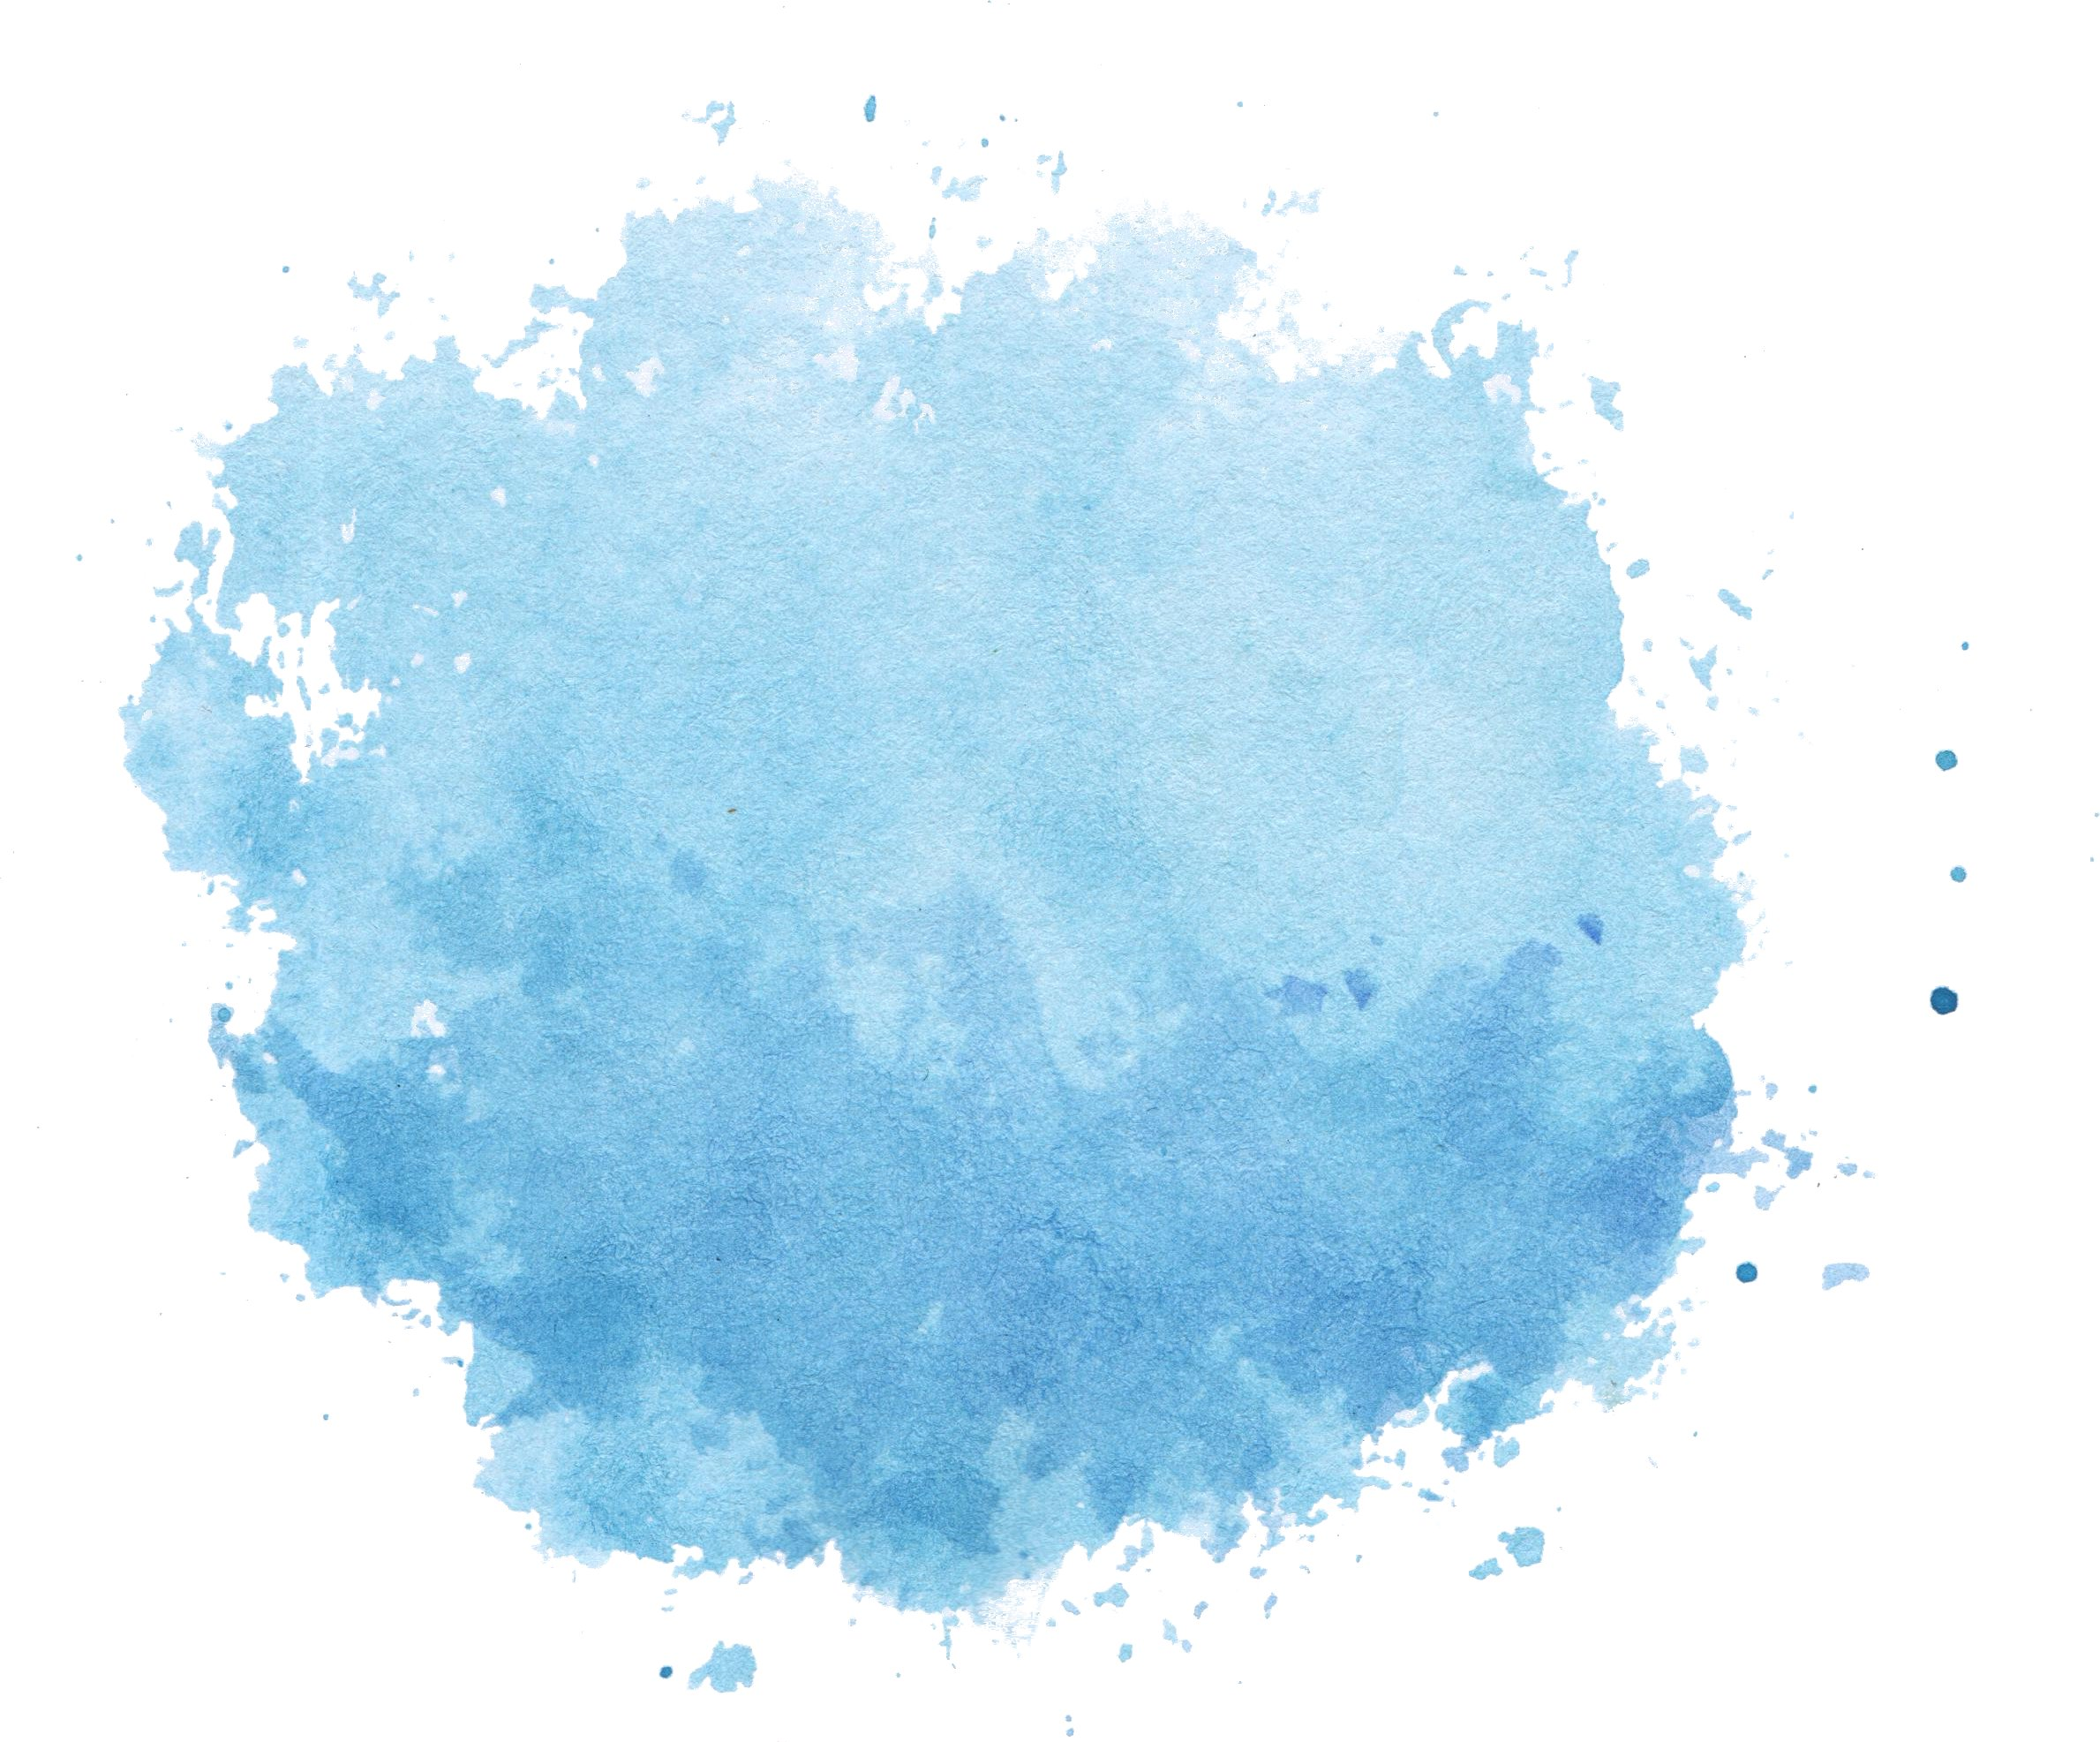 Watercolor Texture Png - 5 Blue Watercolor Texture (JPG) | OnlyGFX.com